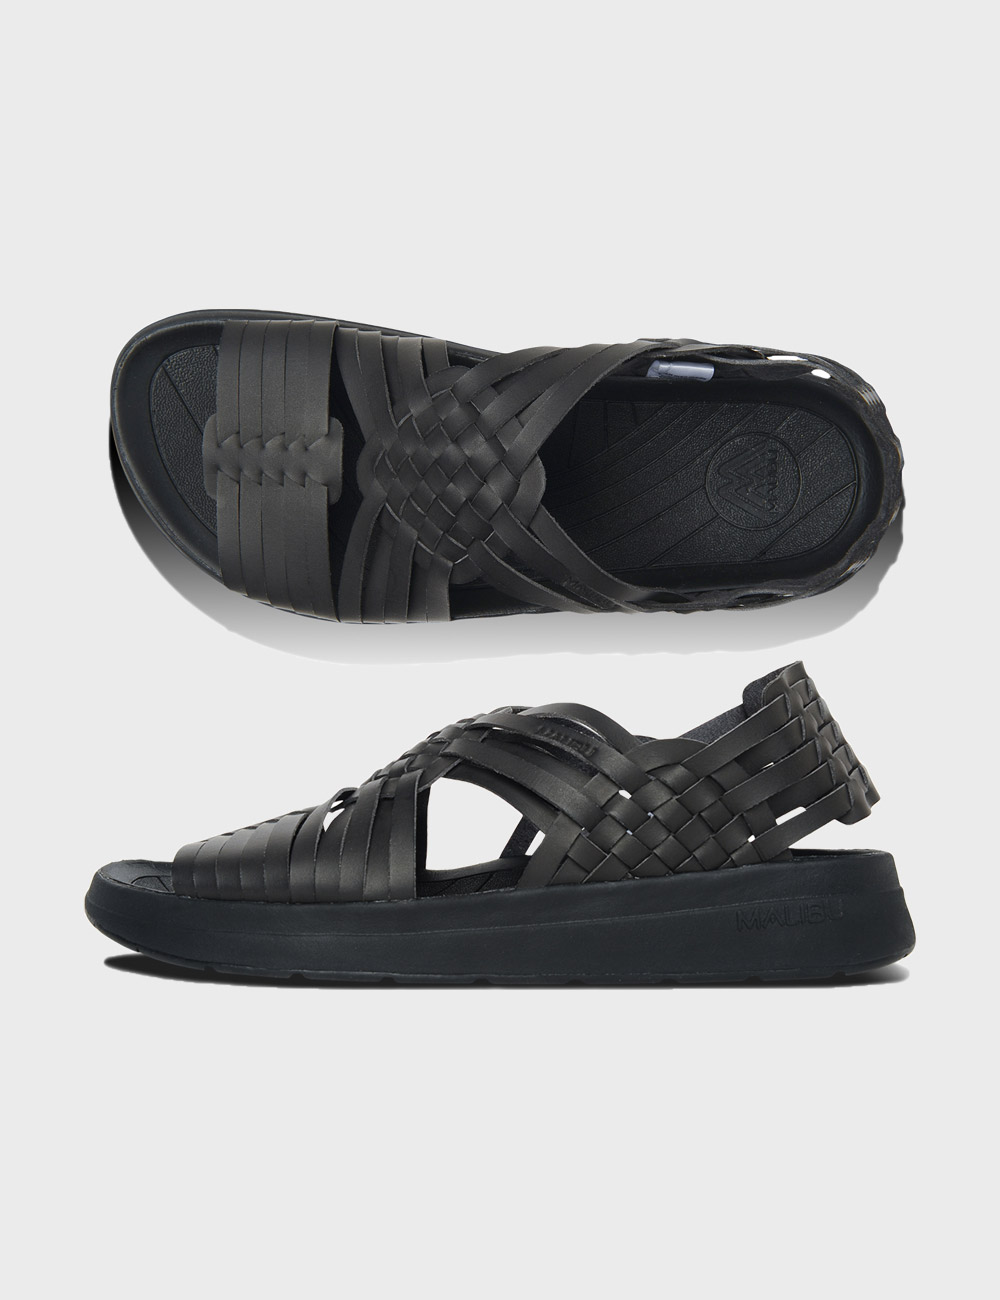 MALIBU : CANYON VEGAN LEATHER (BLACK/BLACK)